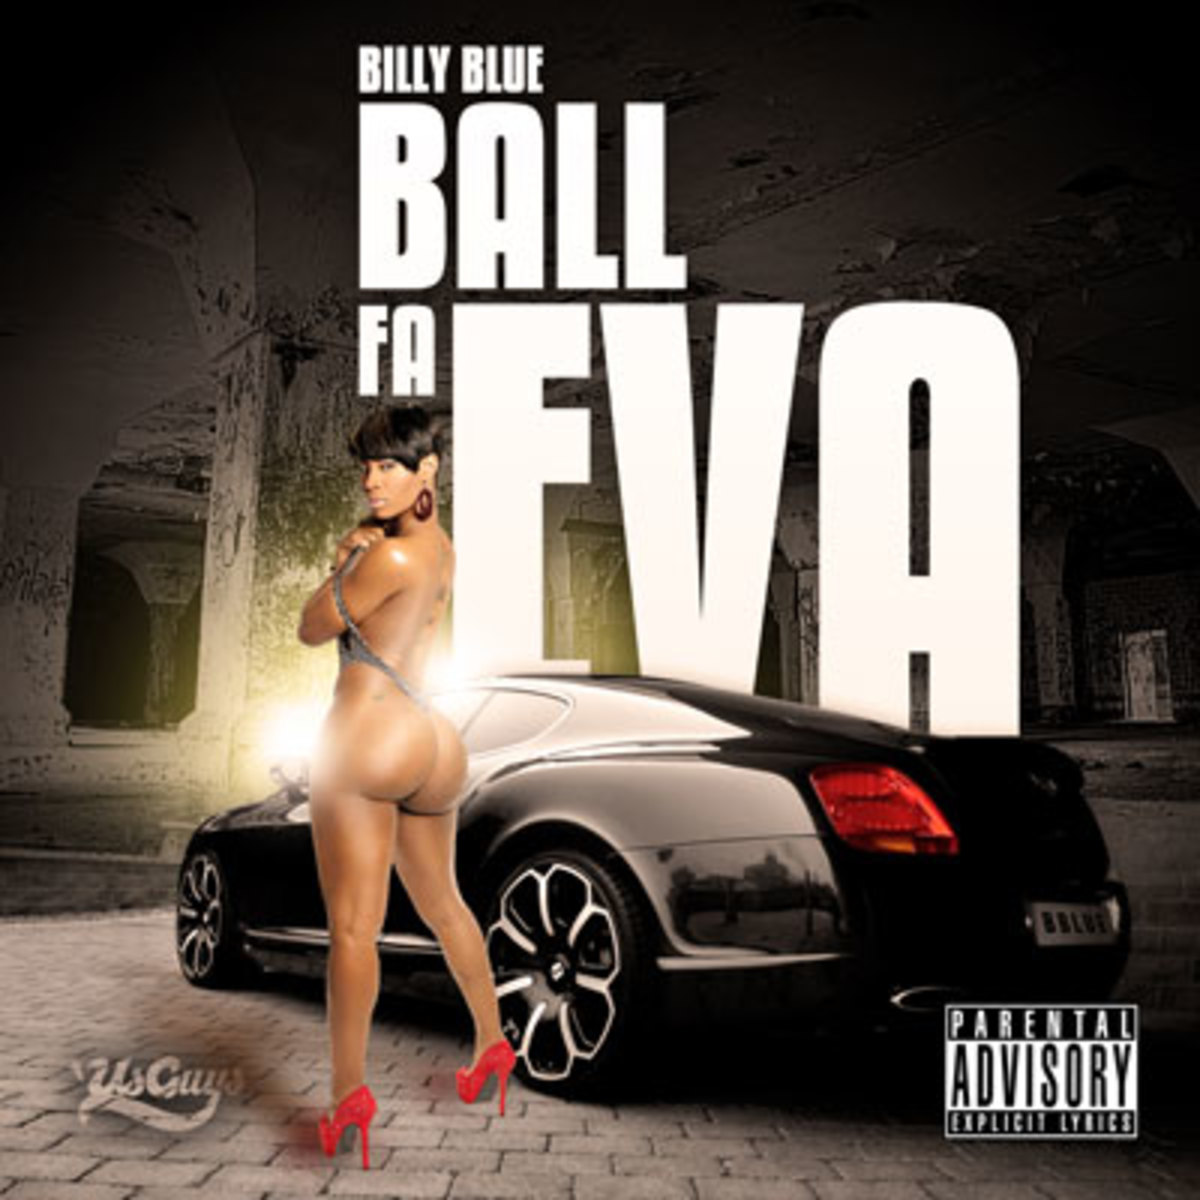 billyblue-ballfaeva.jpg